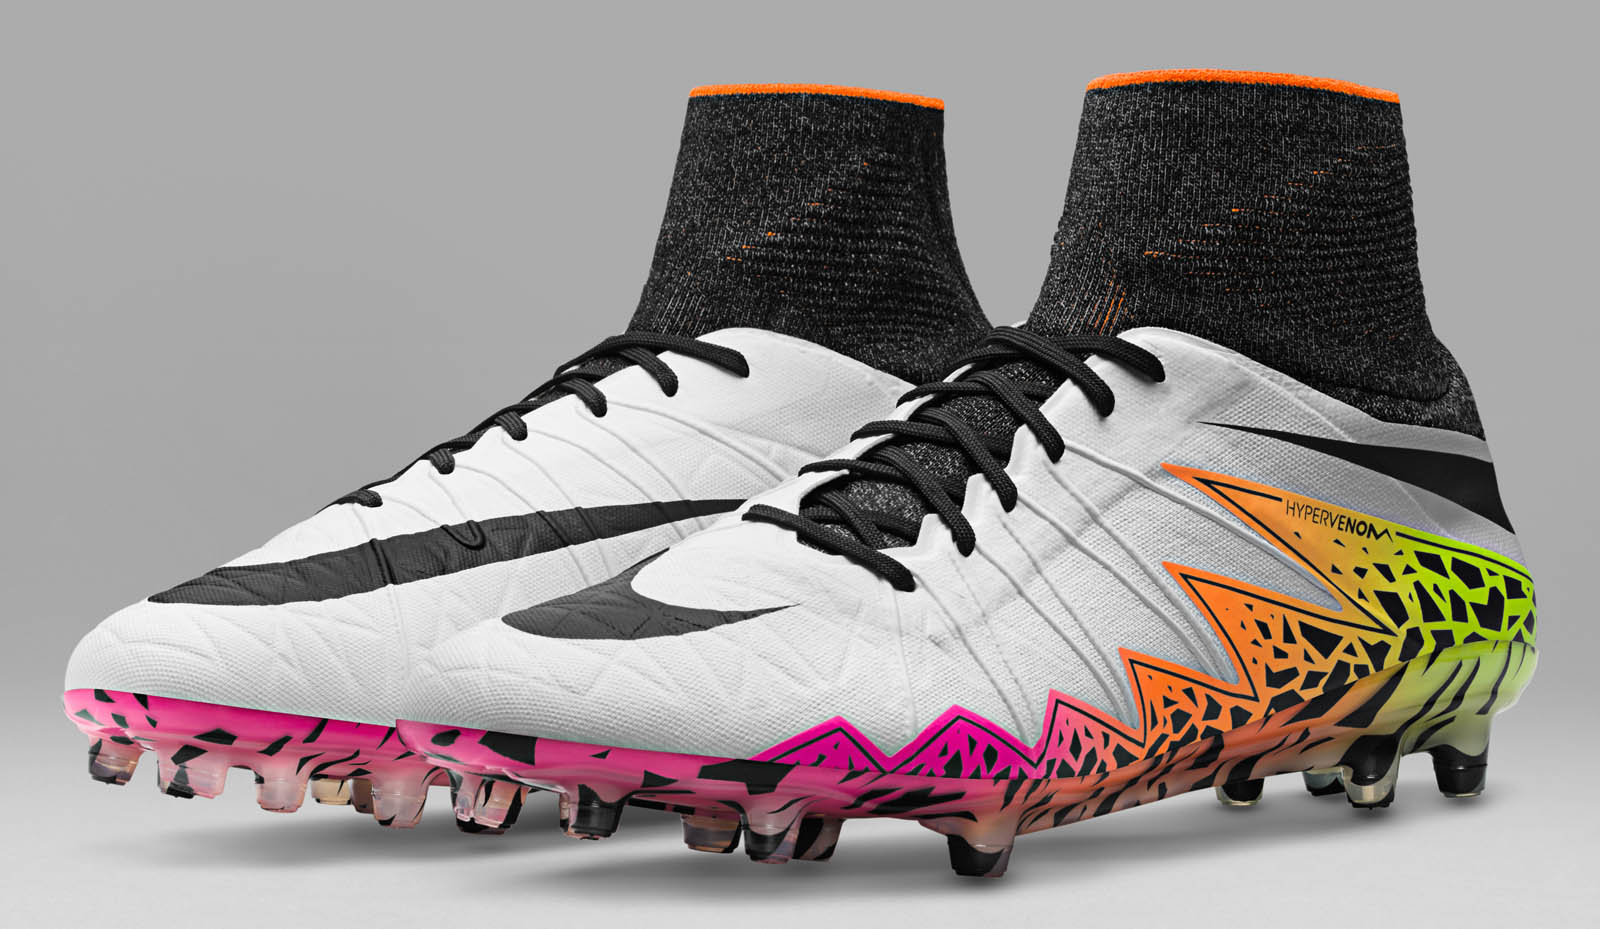 premium selection 8ef35 f0763 In May 2015, Nike revealed the second-gen Nike Hypervenom Phantom Boot. And  while the first generation of Nike's agility boot featured a traditional  low-cut ...